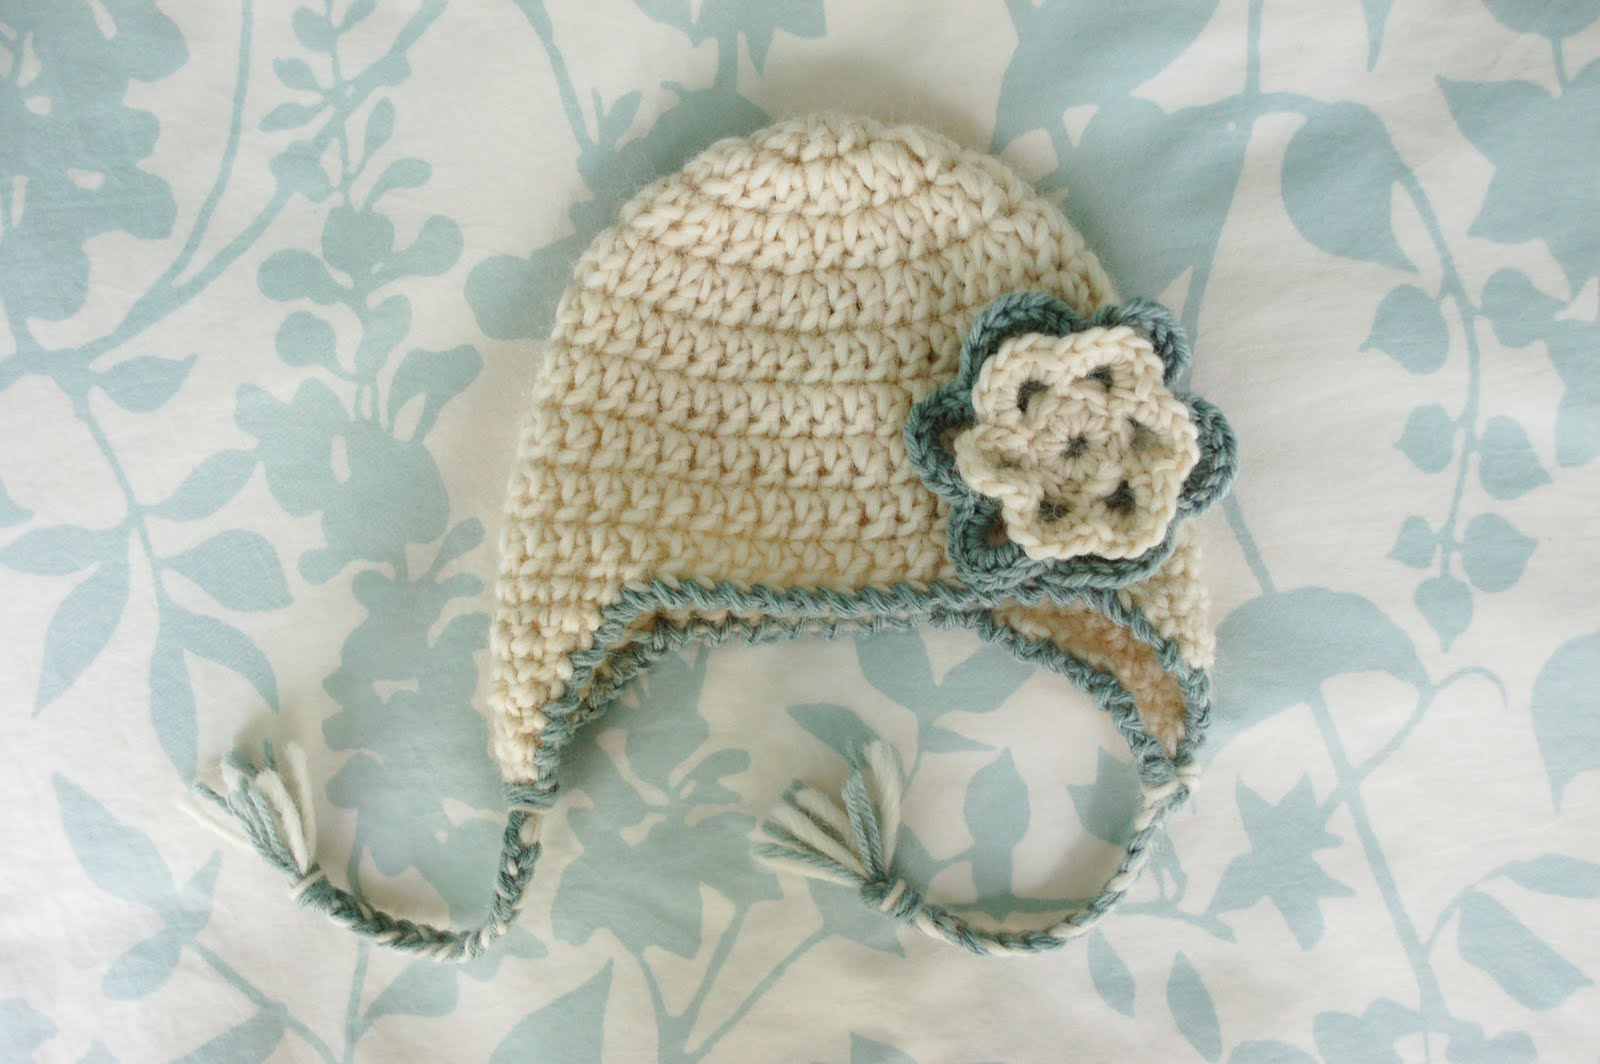 Free Crochet Patterns For Baby Toddler Hats : Alli Crafts: Free Pattern: Baby Earflap Hat - Newborn